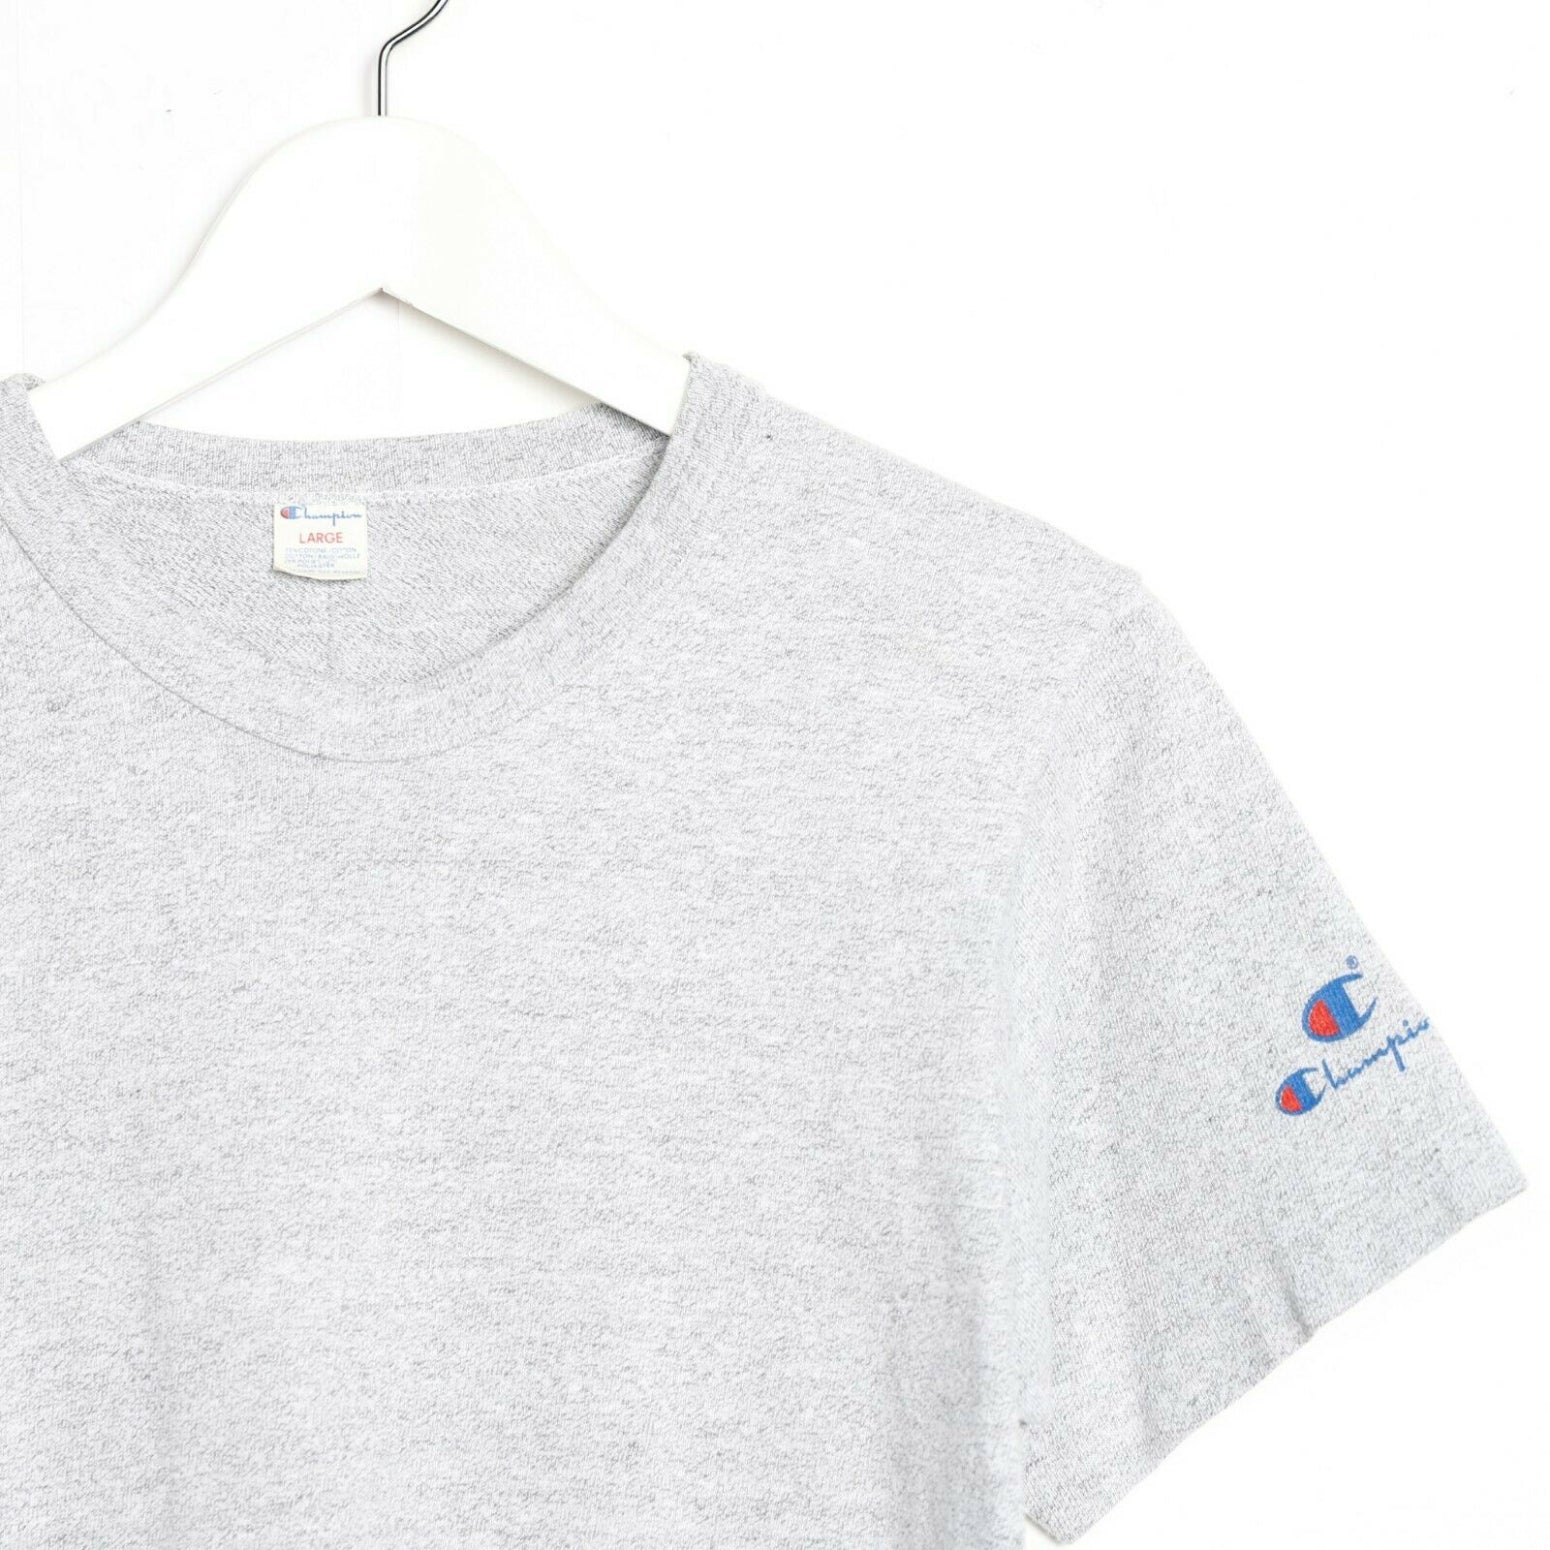 Vintage 90s CHAMPION Small Sleeve Logo T Shirt Tee Grey small S